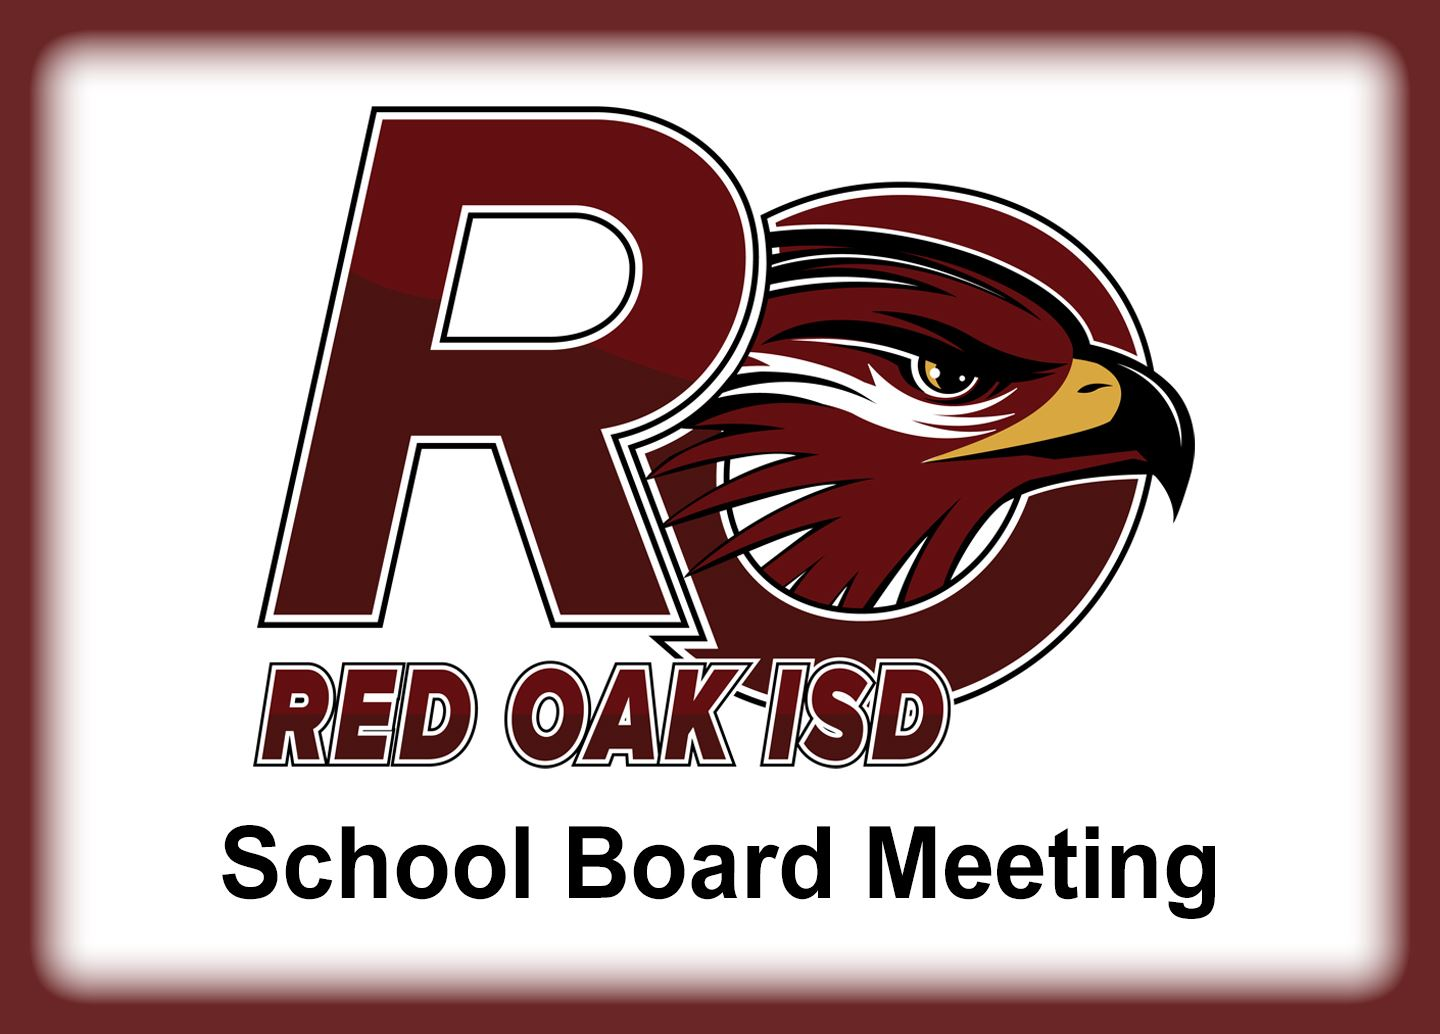 ROISD Regular School Board Meeting